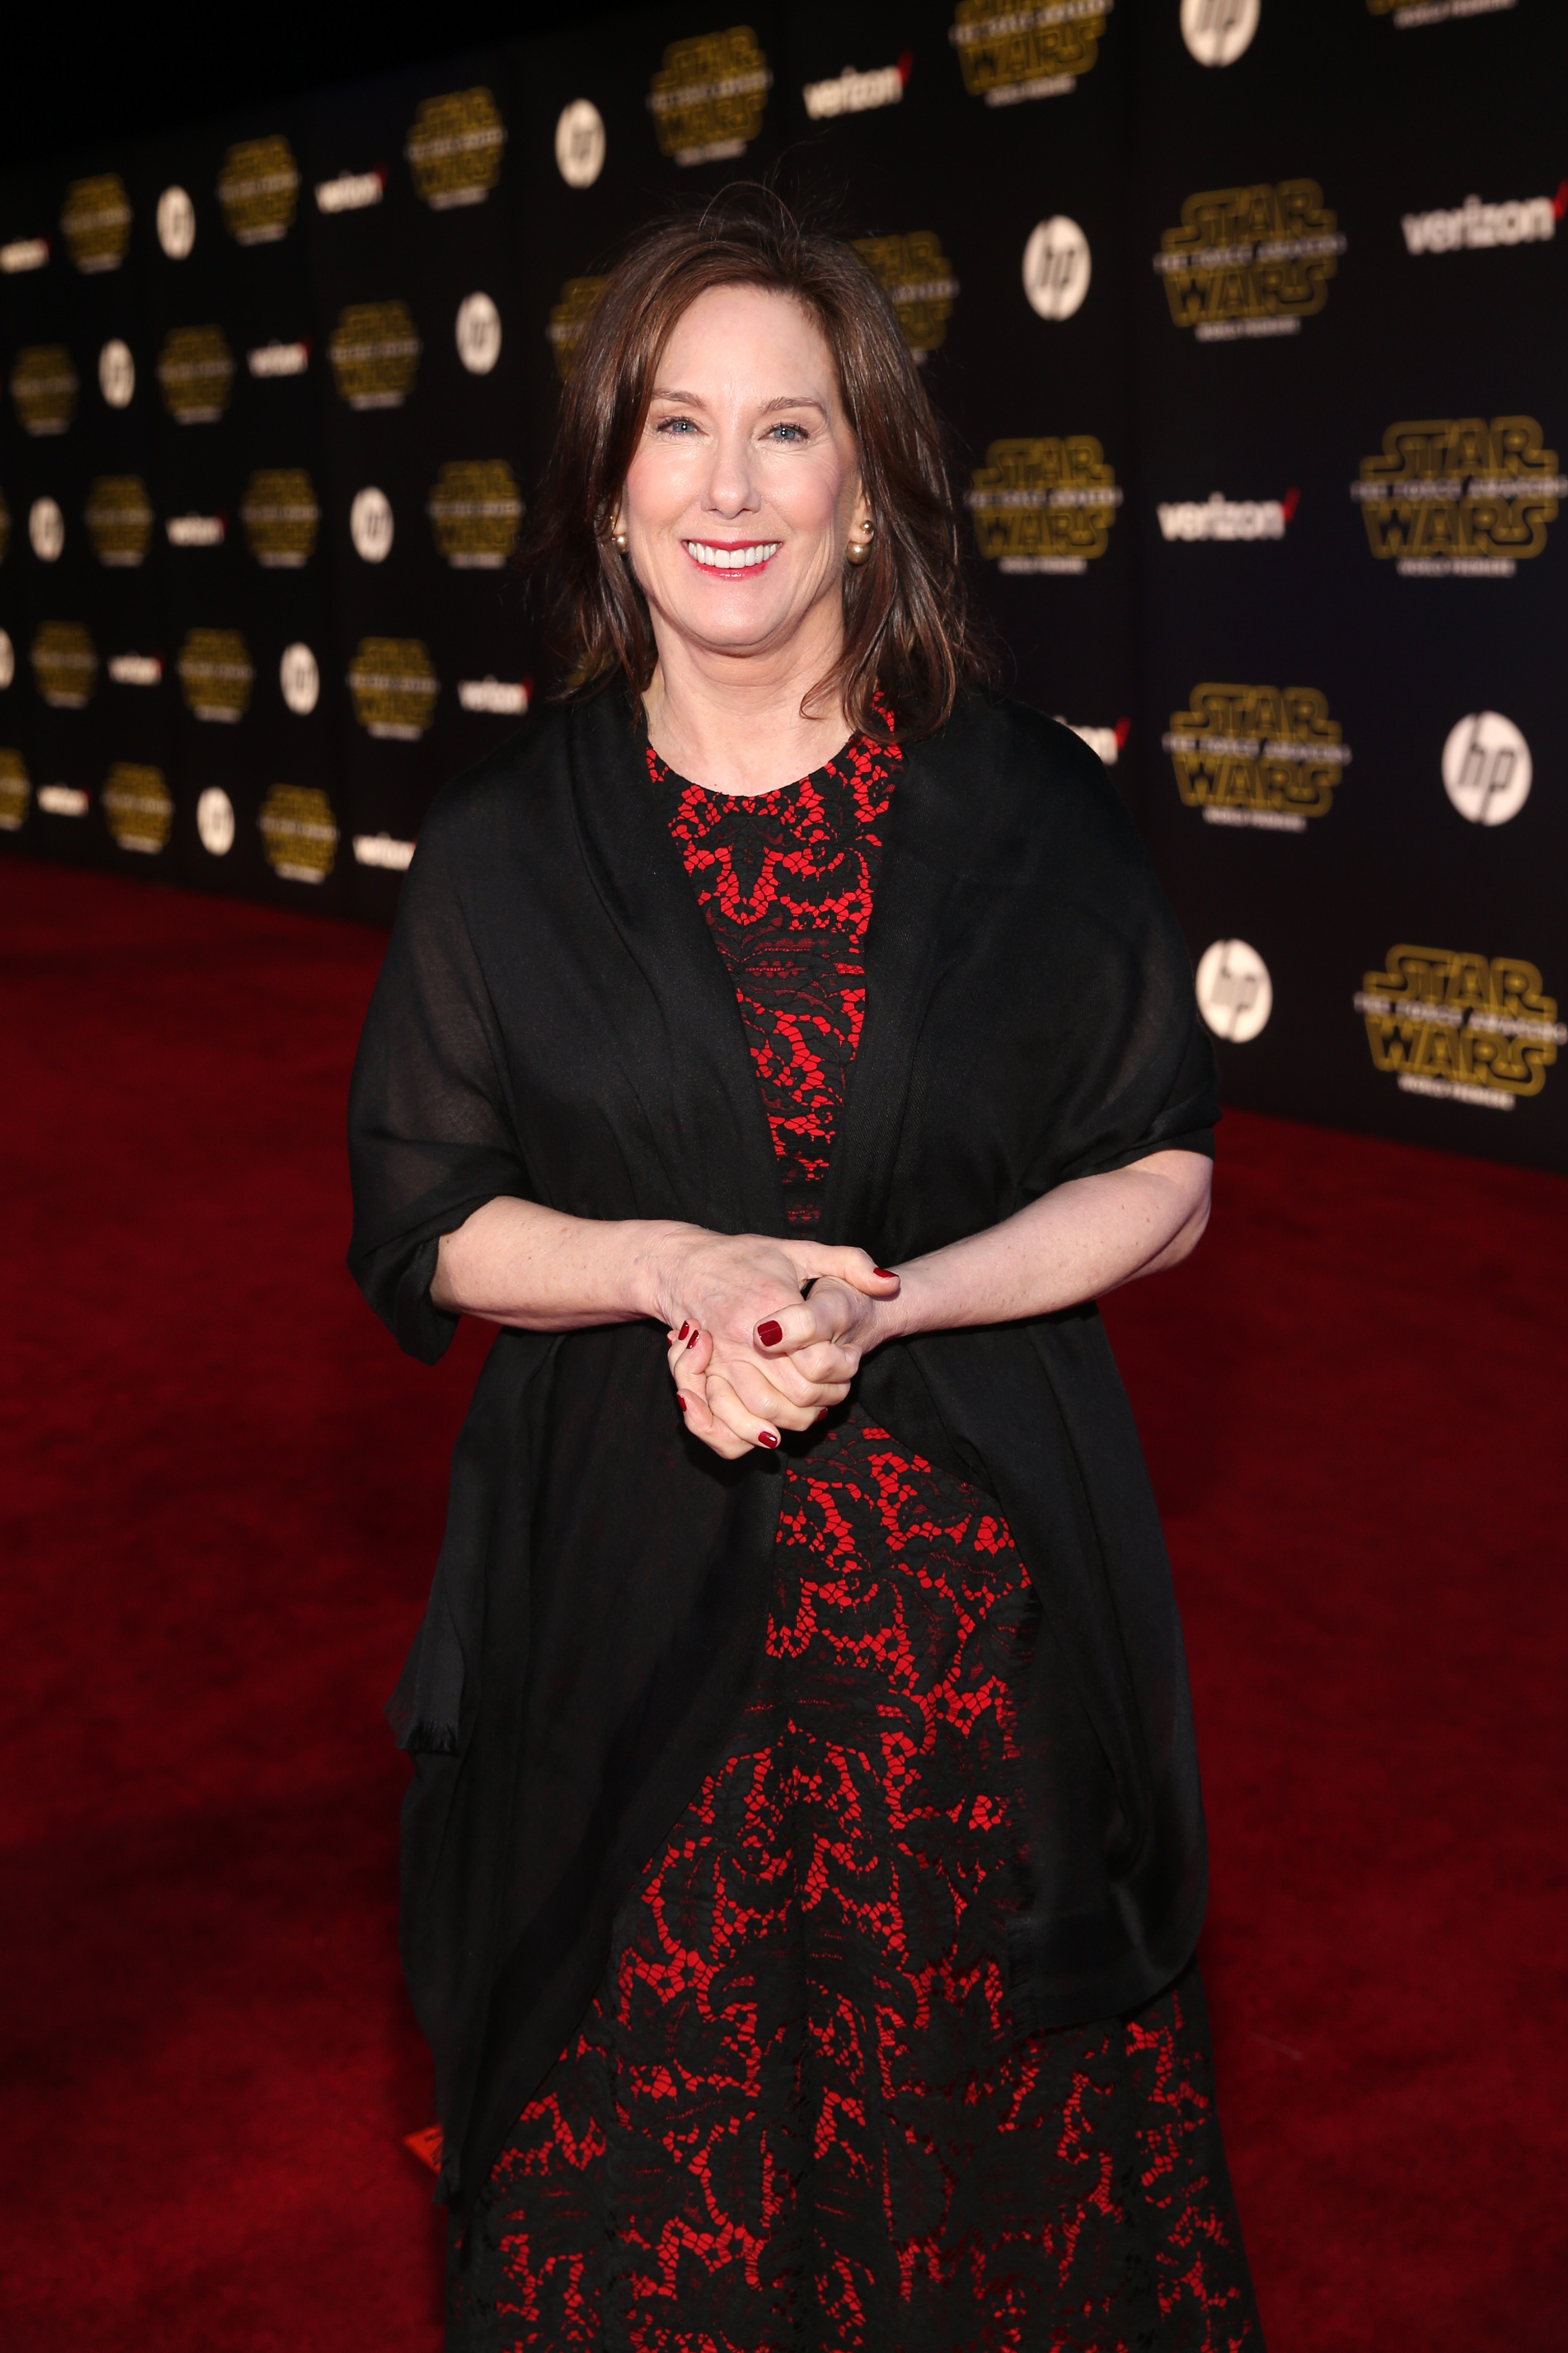 HOLLYWOOD, CA - DECEMBER 14:  President of Lucasfilm Kathleen Kennedy attends the World Premiere of ?Star Wars: The Force Awakens? at the Dolby, El Capitan, and TCL Theatres on December 14, 2015 in Hollywood, California.  (Photo by Jesse Grant/Getty Images for Disney) *** Local Caption *** Kathleen Kennedy